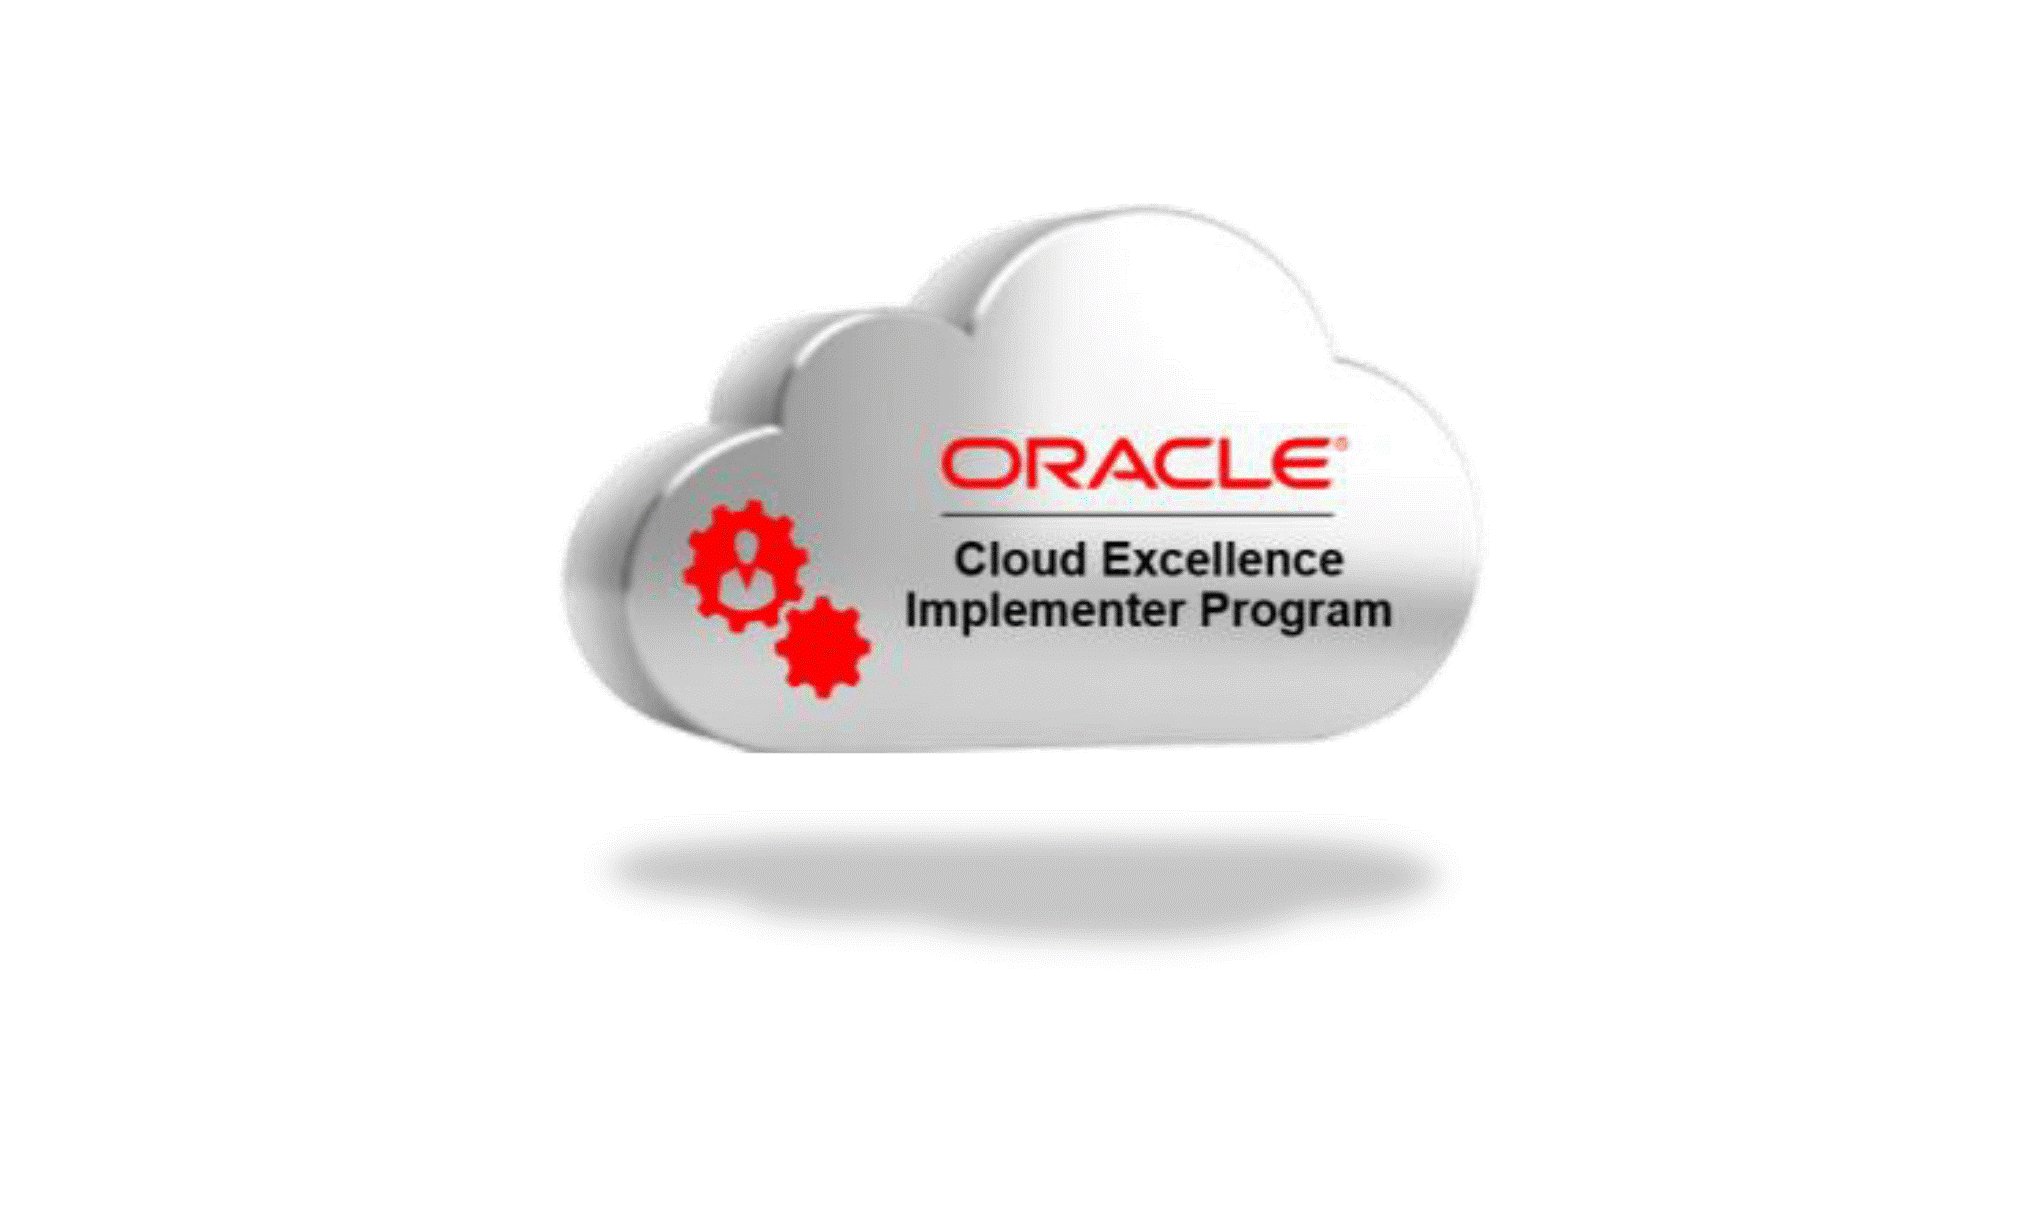 Cloud Excellence Implementer Program